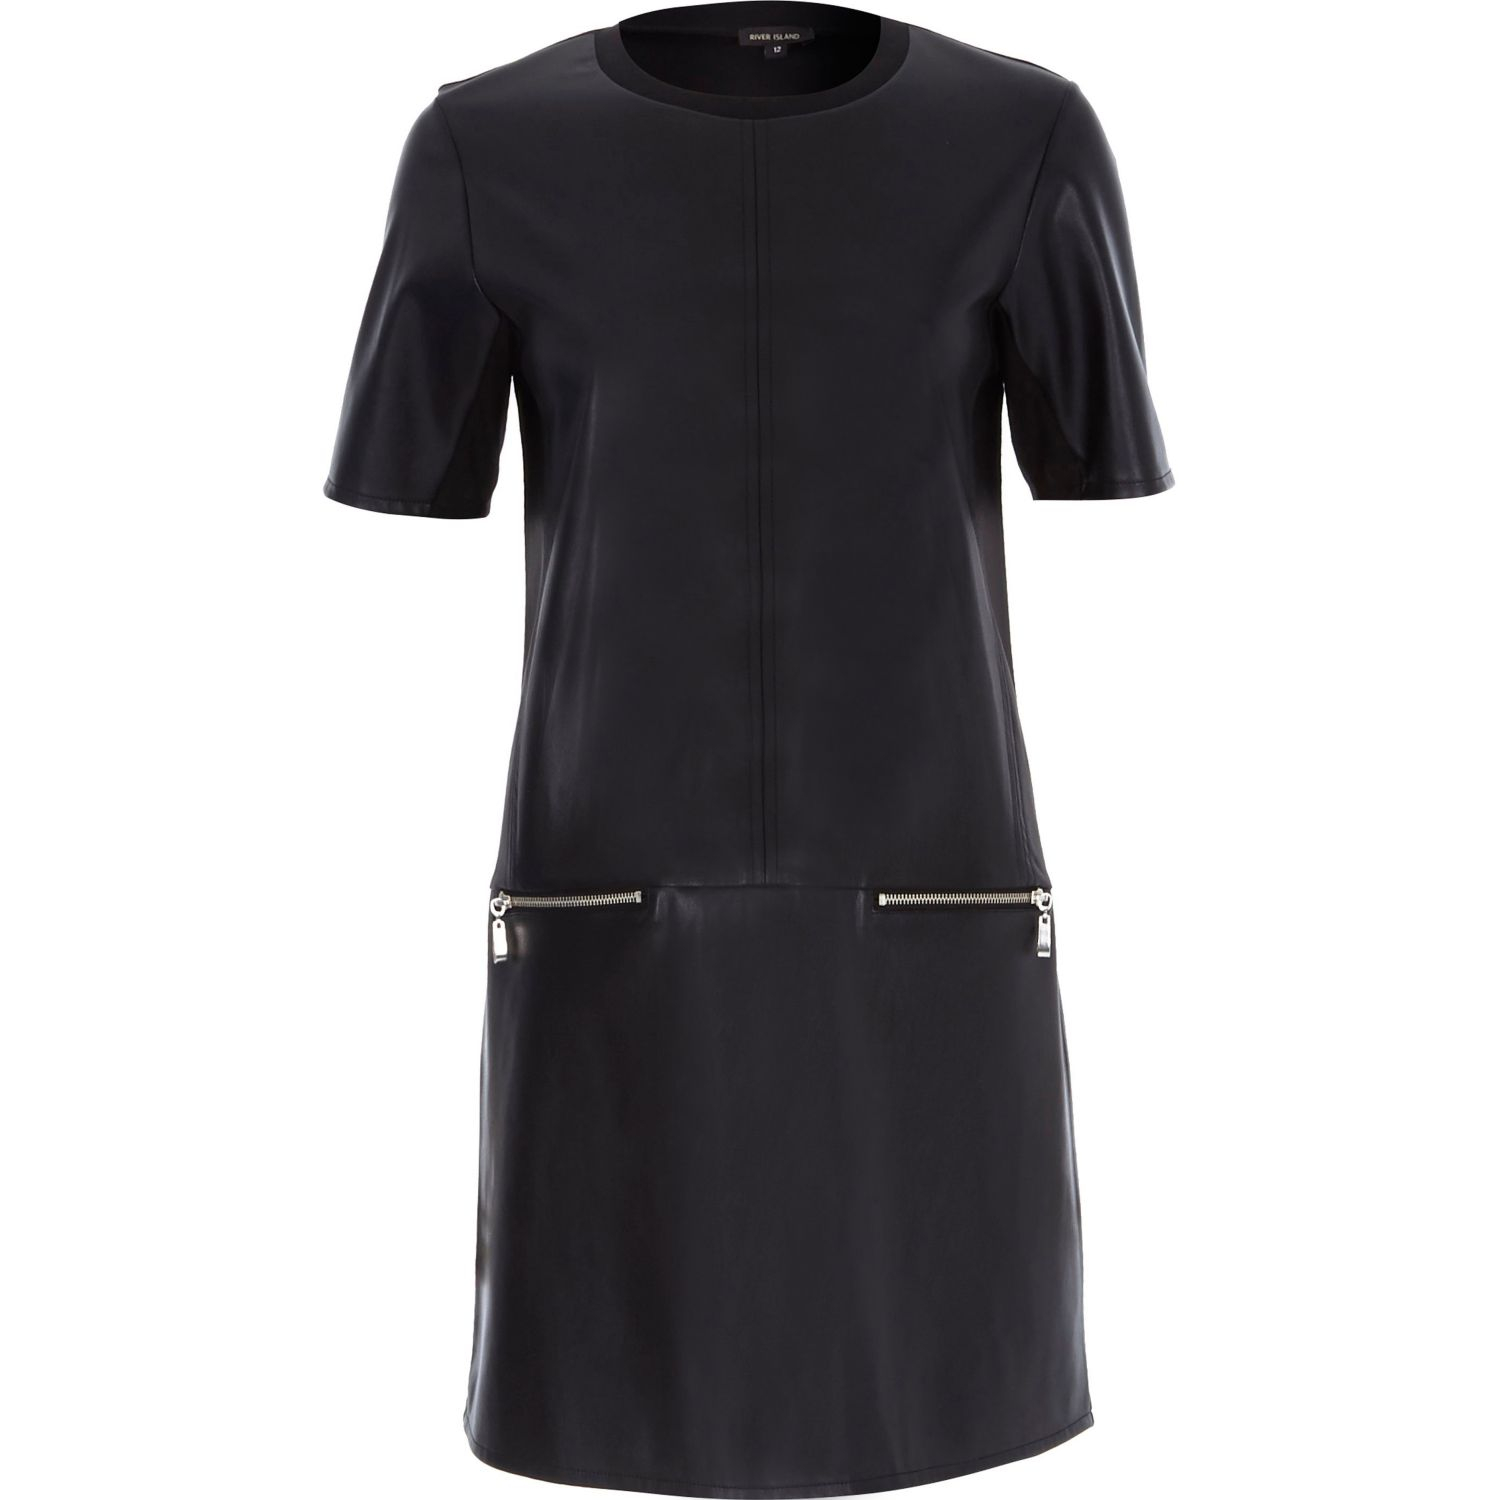 Black t-shirt dress, leather sleeve detail. New RALPH LAUREN BLUE LABEL SOUTHBURY WOMEN'S BROWN LEATHER SHIRT DRESS SIZE 2 See more like this. The Kooples Baby Leopard & Black Leather Trim Shirt Waist Dress Size XL. Brand New · The Kooples · .